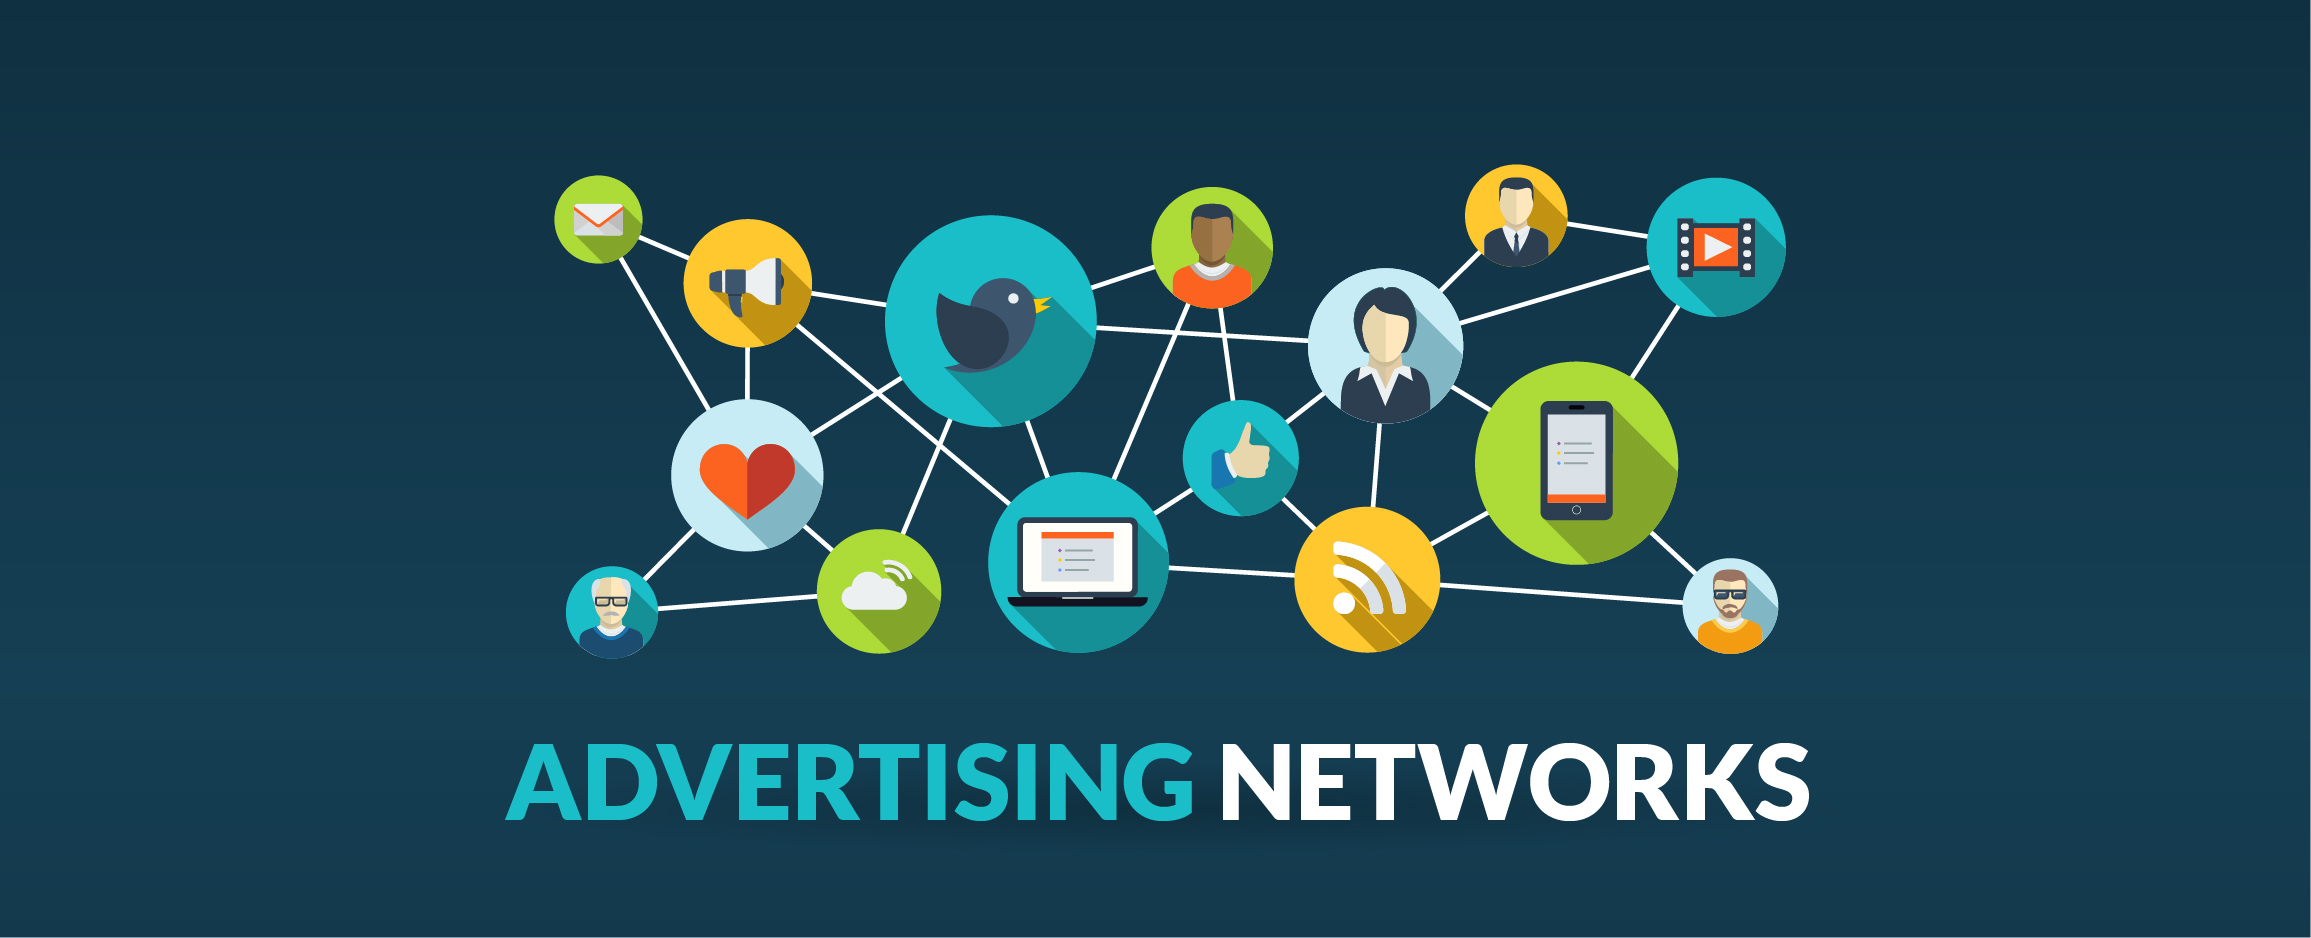 Advertising Networks